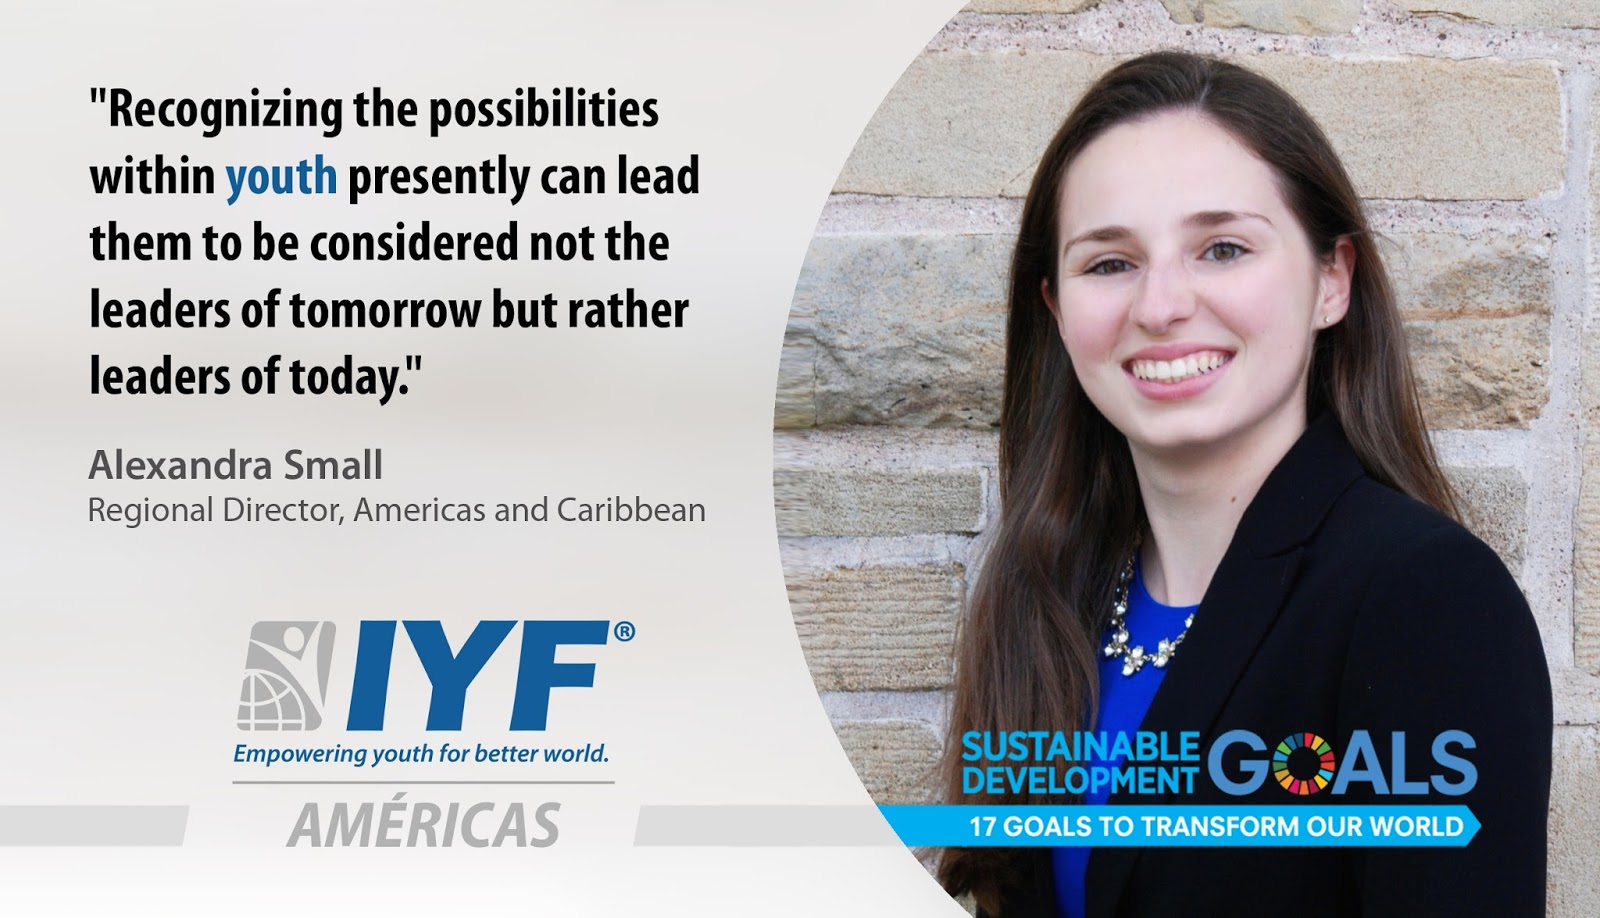 Alexandra Small, Regional Director for Americas & Caribbean